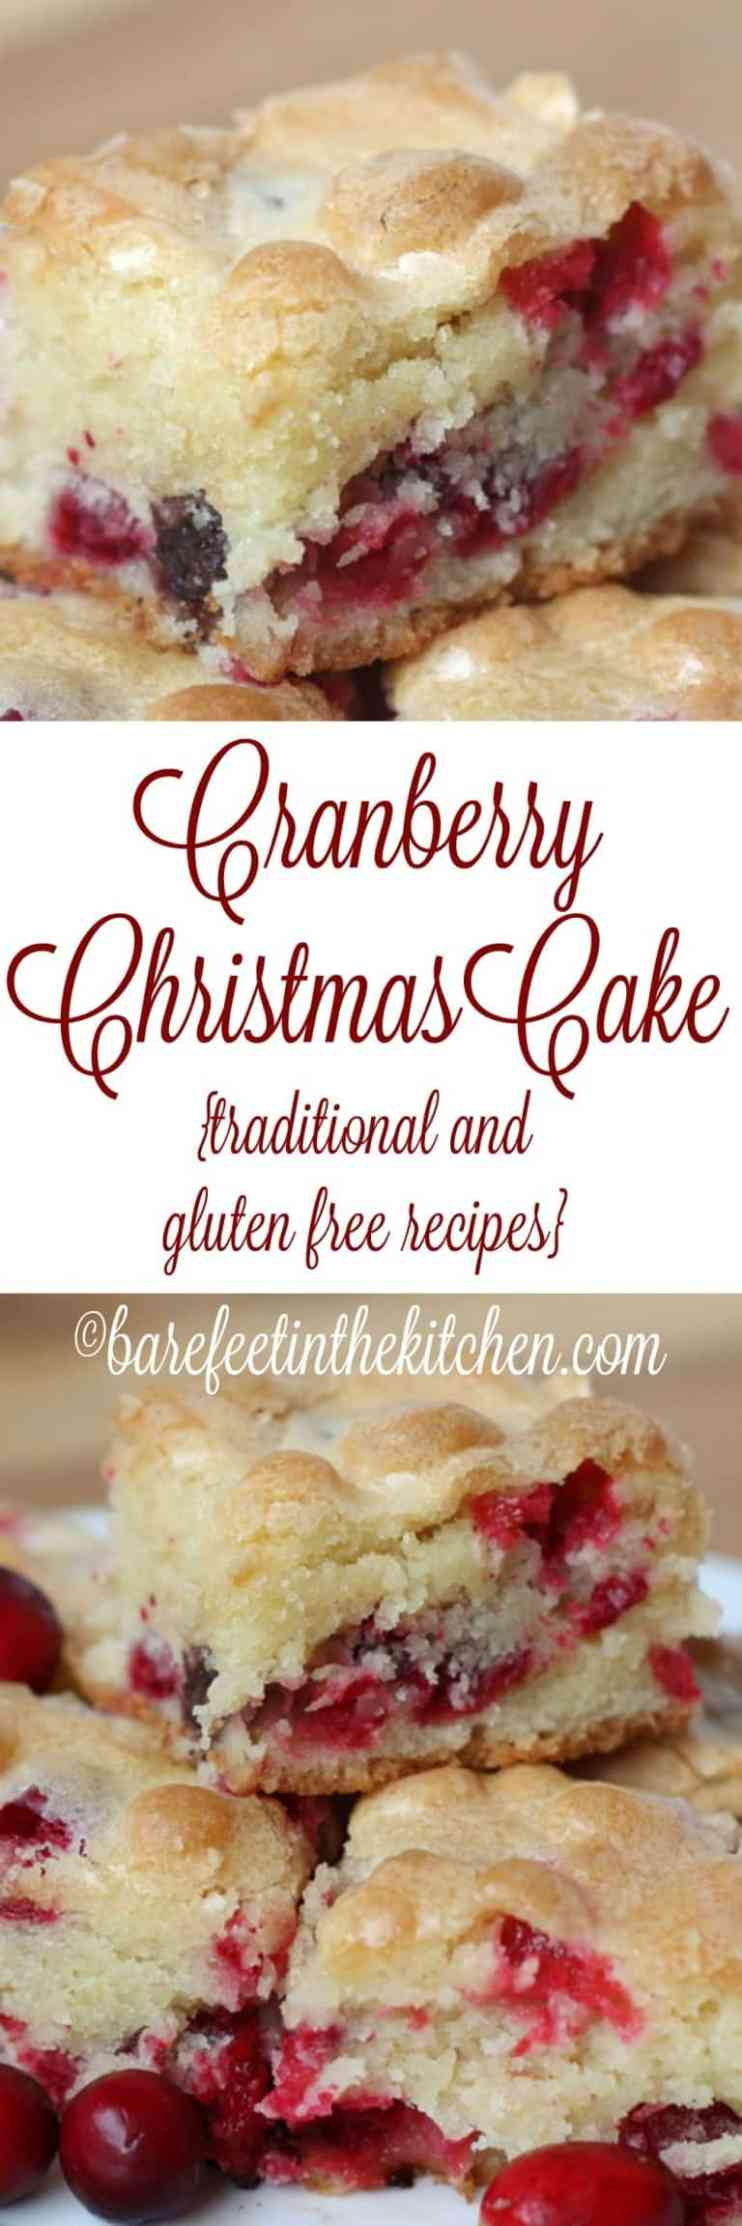 Cranberry Christmas Cake - Best Christmas Desserts - Recipes and Christmas Treats to Try this Year! Try these amazing and cute easy Christmas dessert recipes to have a great party for your kids, friends, and family! Cupcakes, cakes, sweet bites, pies, brownies, home-made Christmas popcorn, Christmas cookies and other delights. #christmas #dessertfoodrecipes #xmas #recipes #food #christmasfood